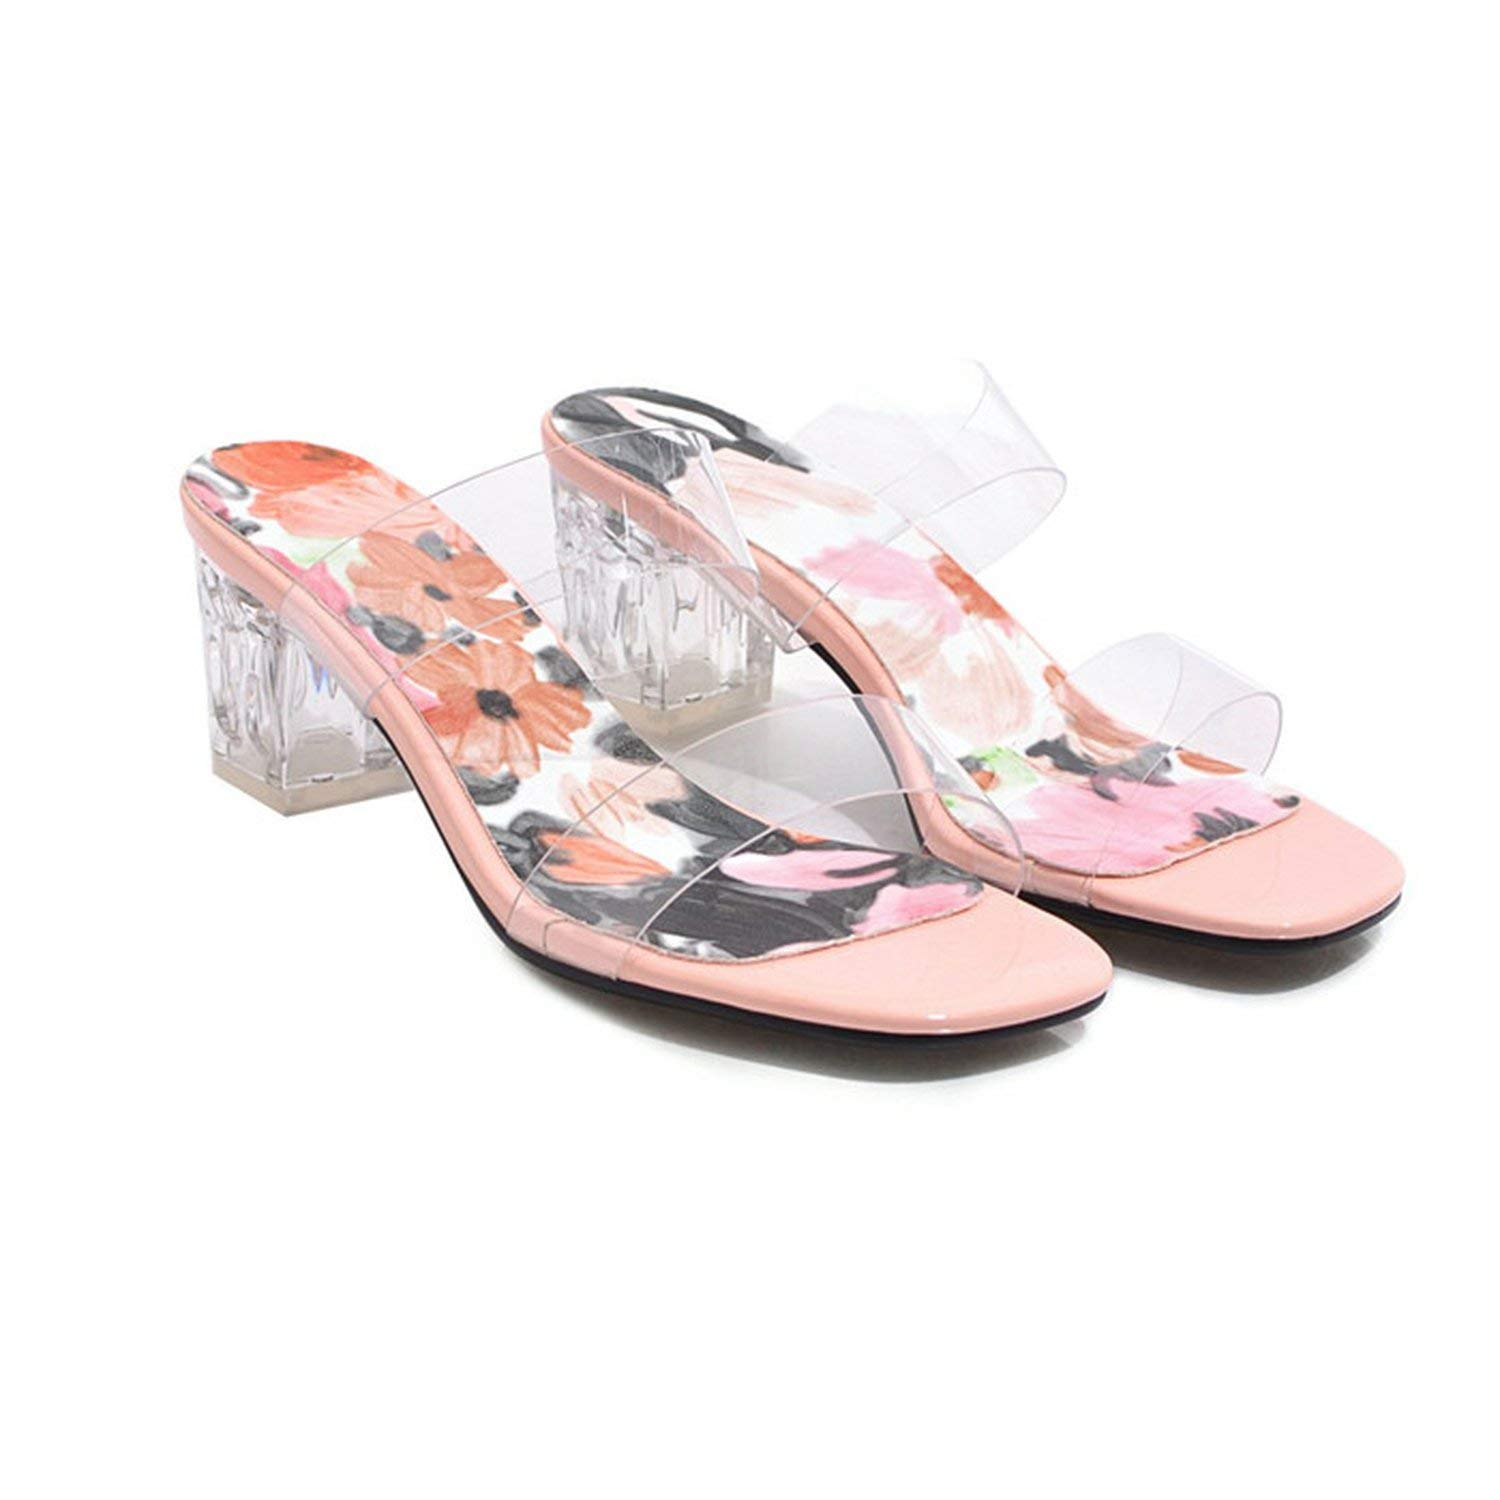 Pink coolemon Summer Slippers Women shoes Flower Square High Heel shoes Transparent Open Toe Slides Ladies Sandals Pink Plus Size 3-12